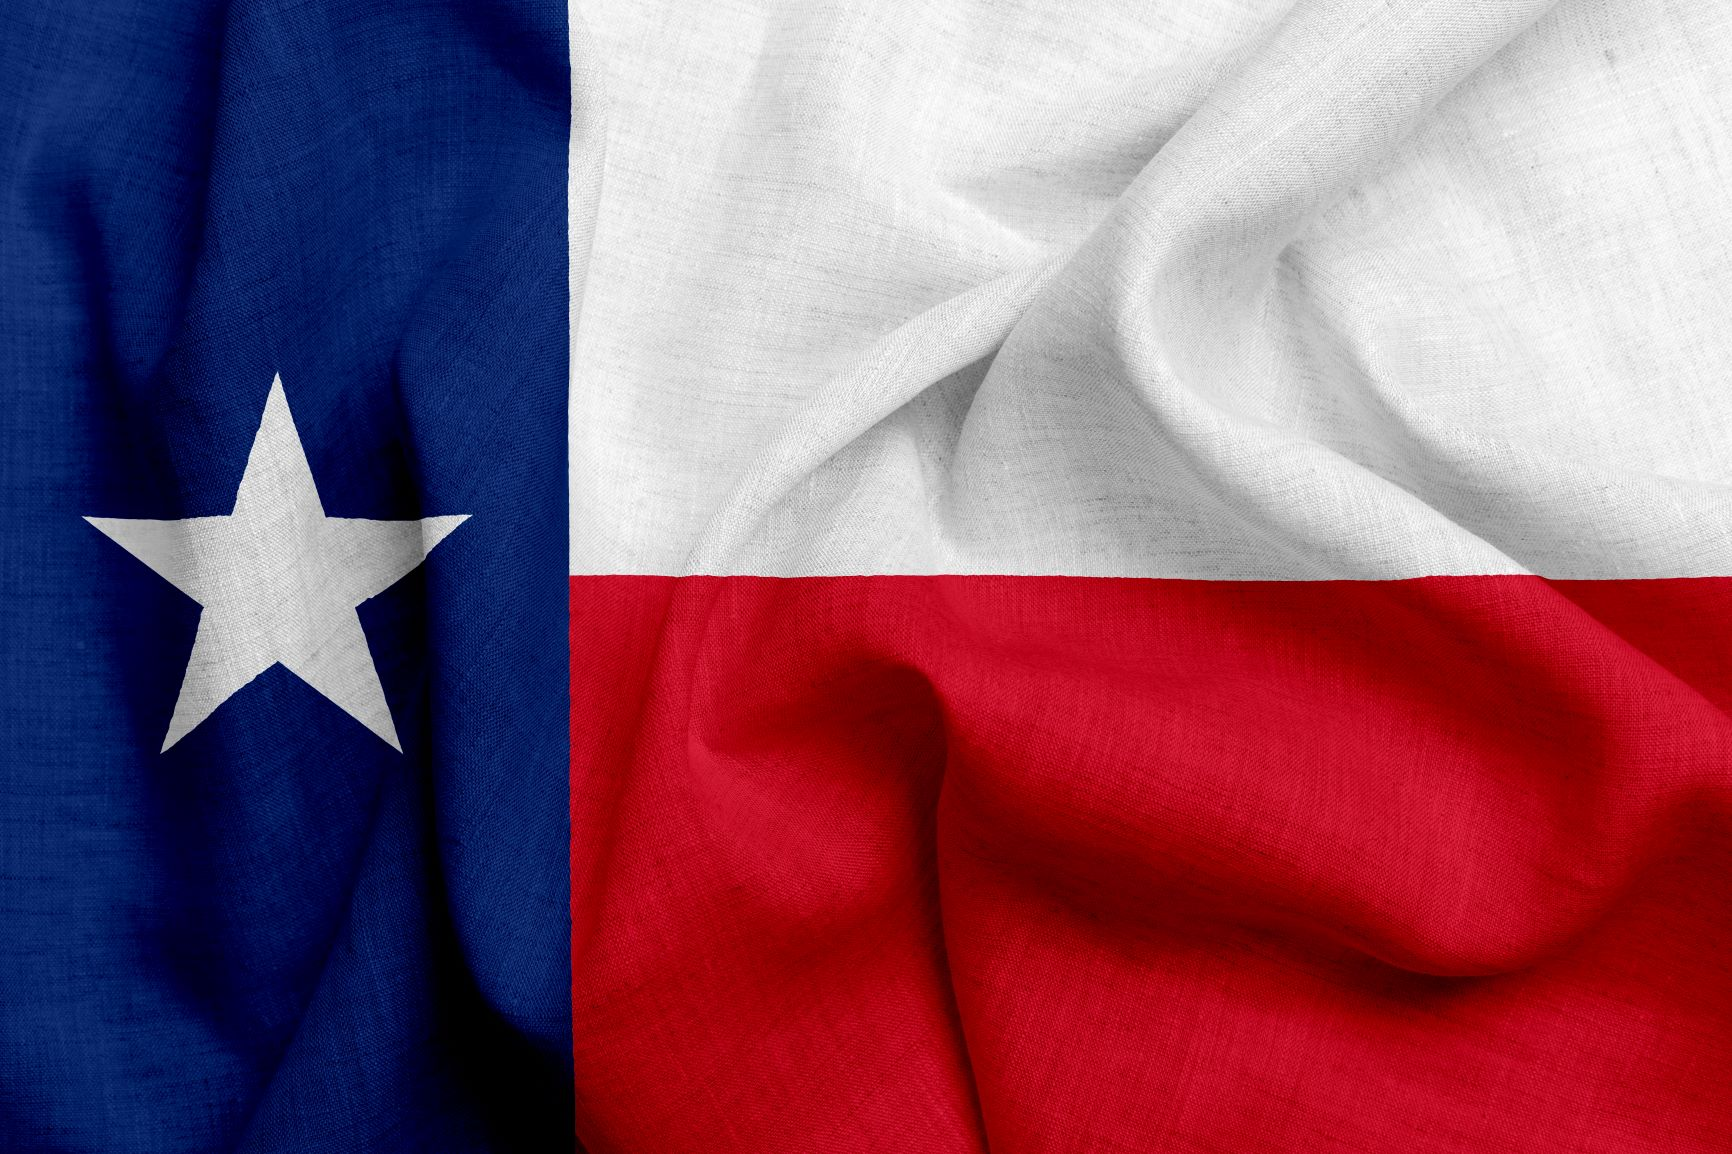 John Collier: Natural gas should remain cornerstone of Texas energy policy